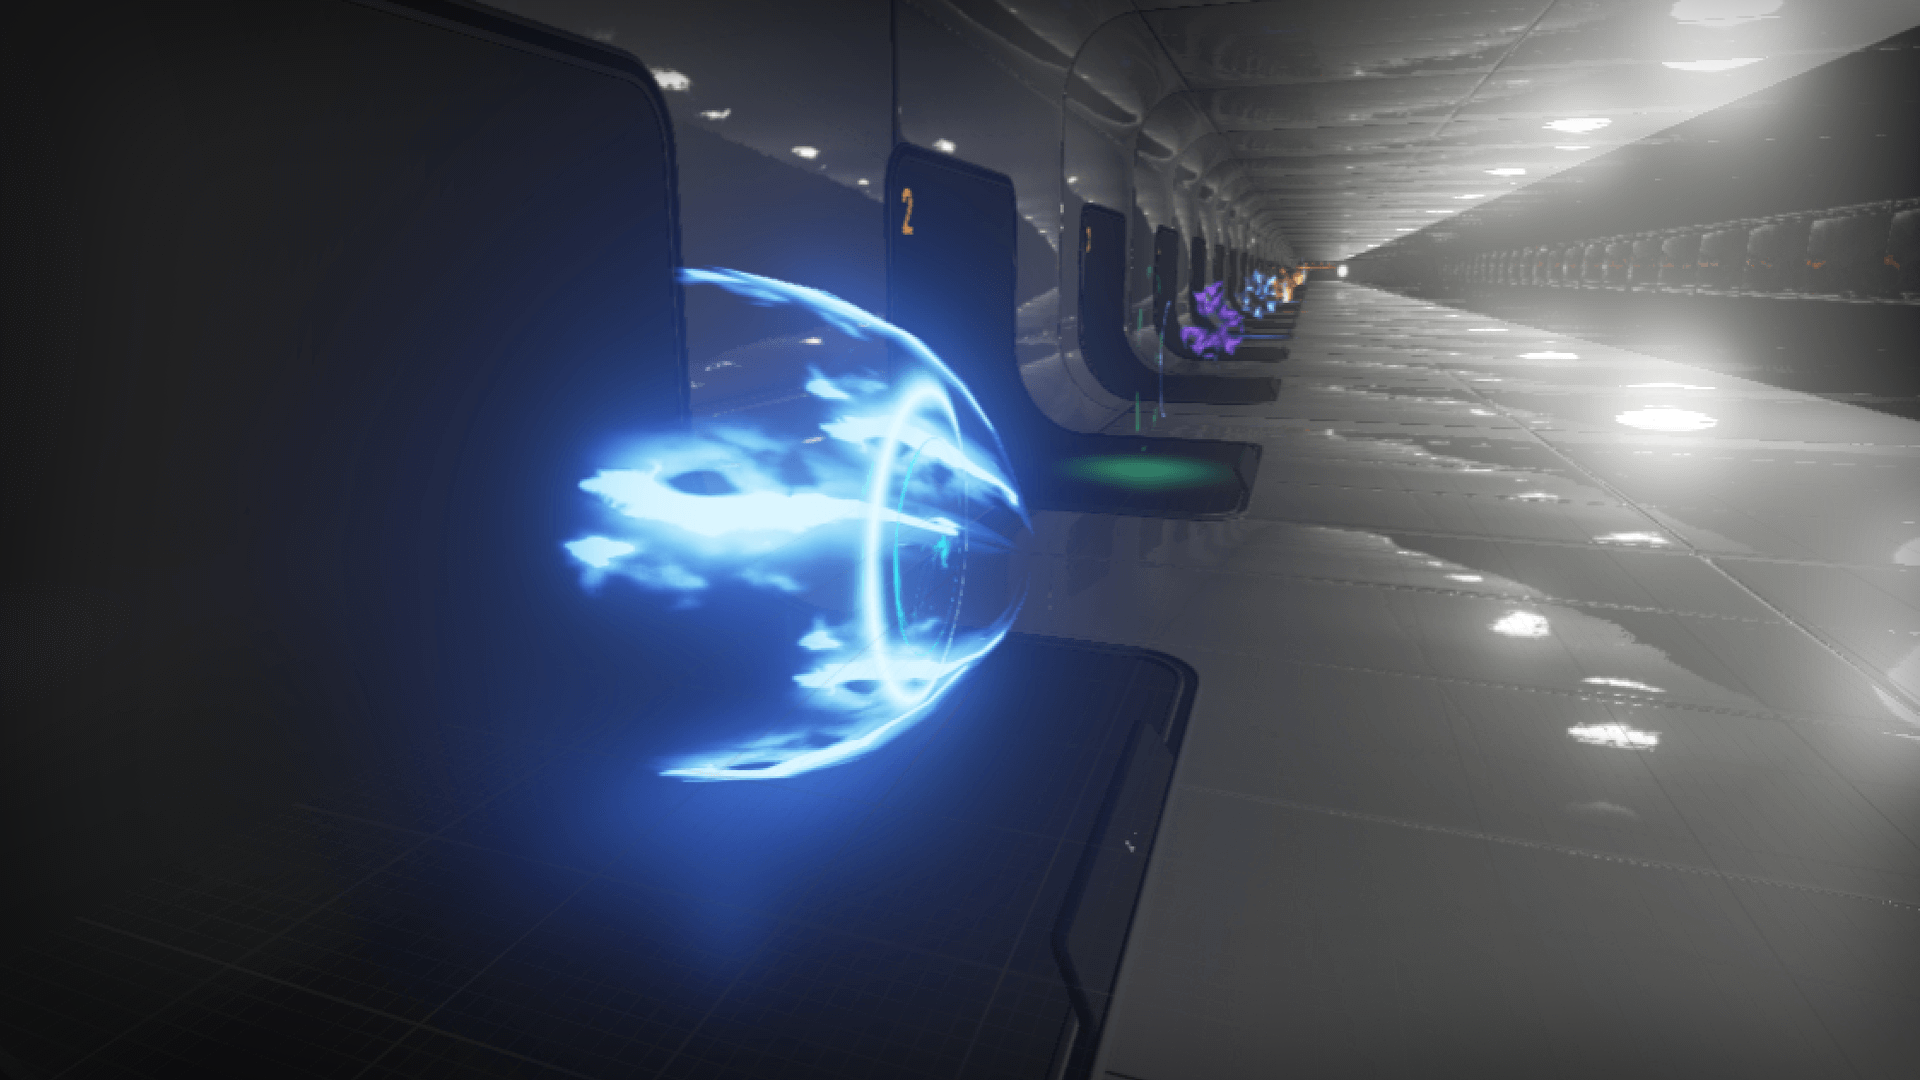 KY Magic Effects Vol. 2 by Kakky